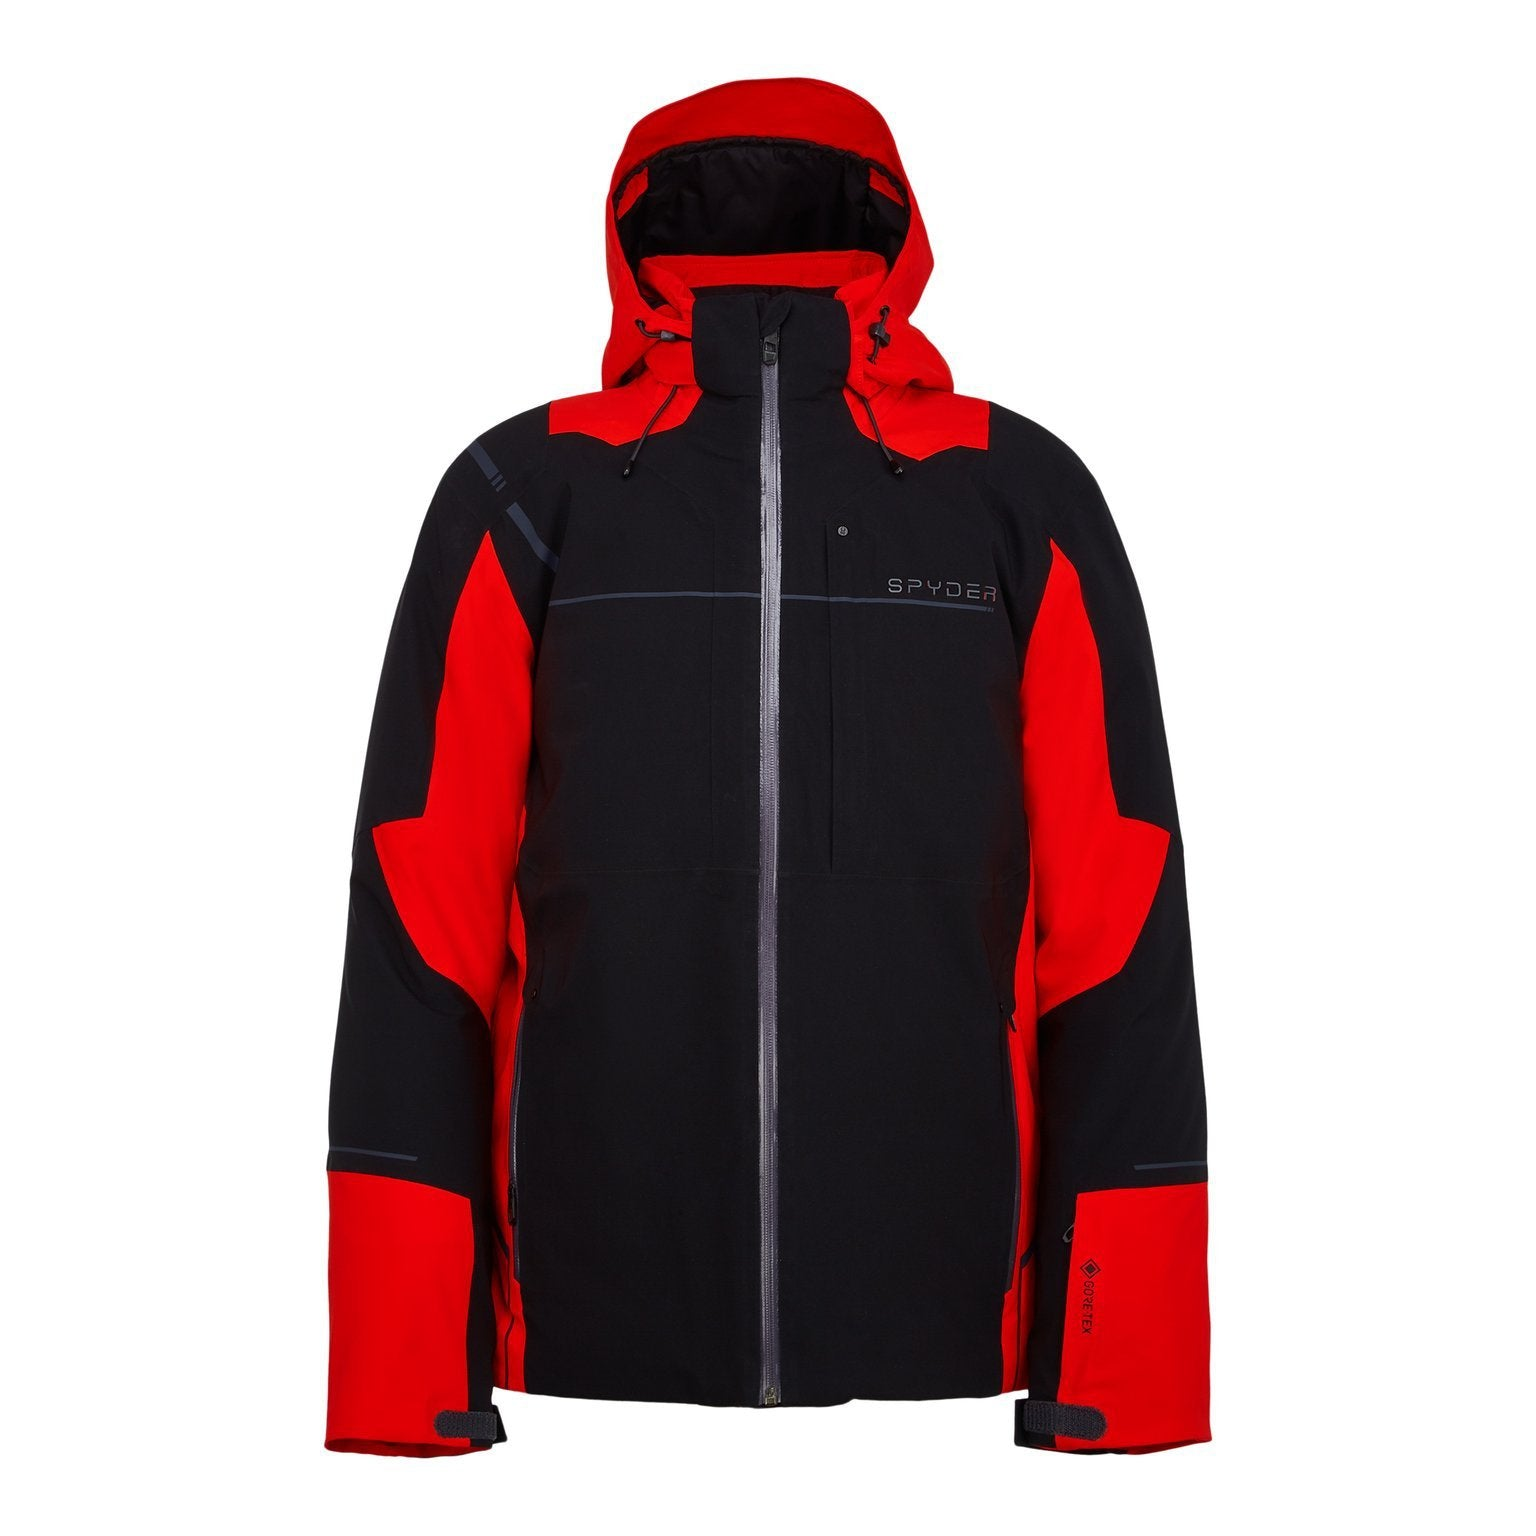 Spyder 2021 Men's TITAN GTX Jacket